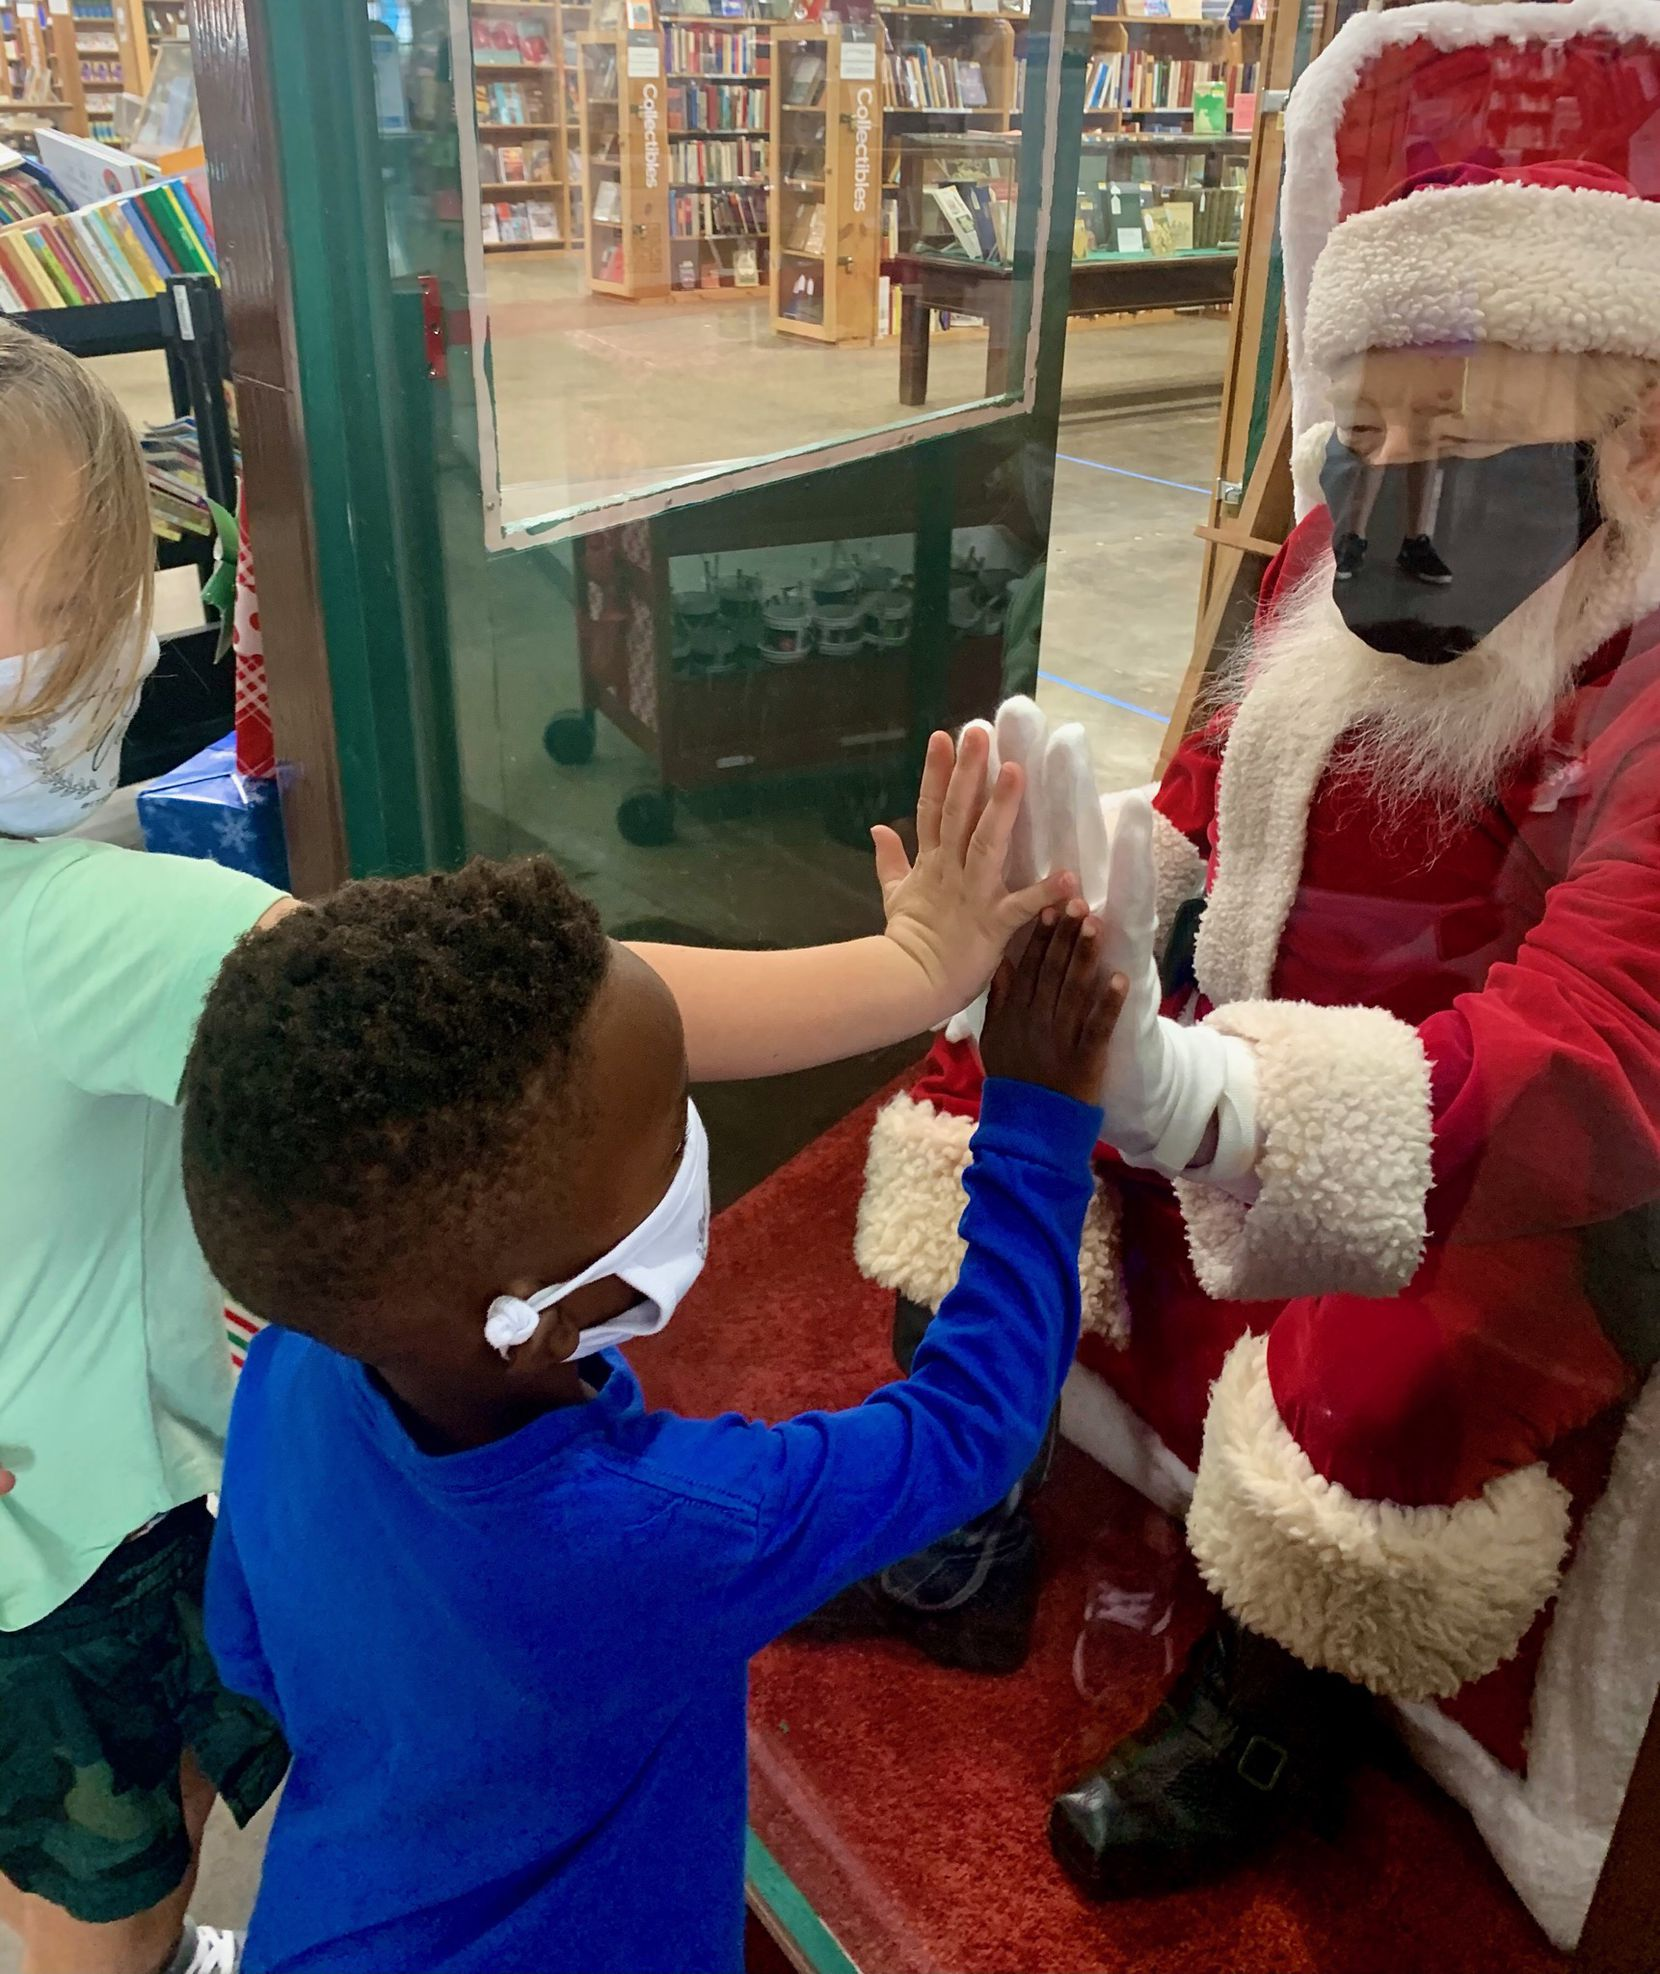 Scott Ward, the longtime Santa at Half Price Books, connects with children who came to see Santa through a protective screen at the retailer's flagship store in Dallas.